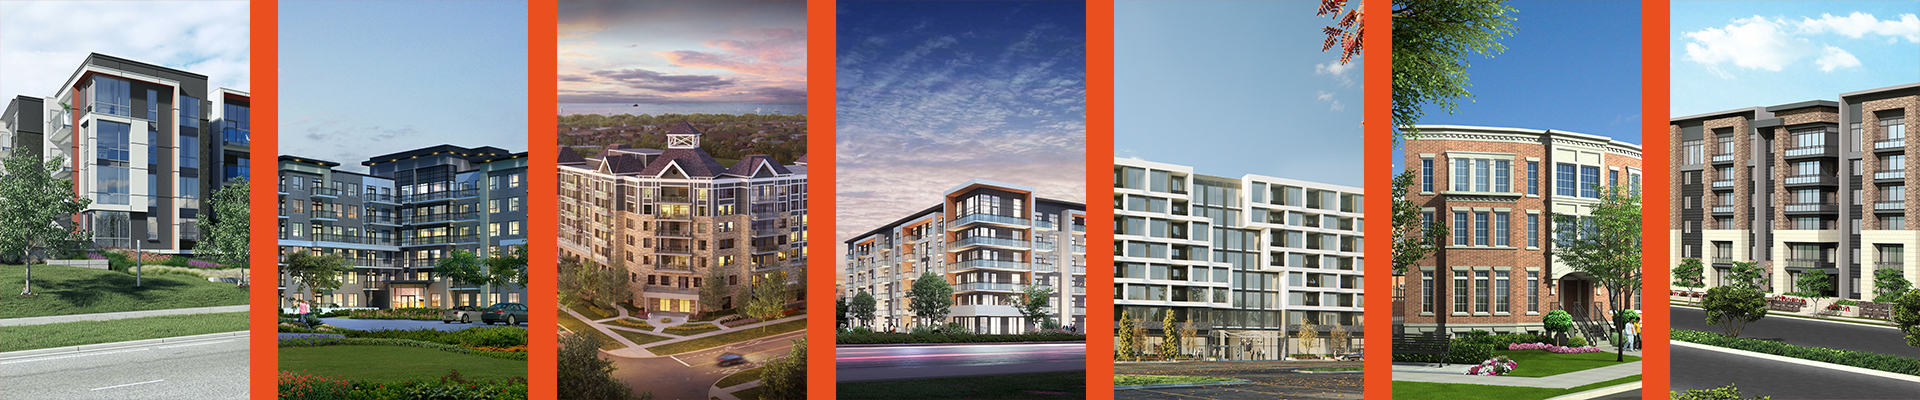 Korsiak Urban Planning - Mid Rise Development Portfolio